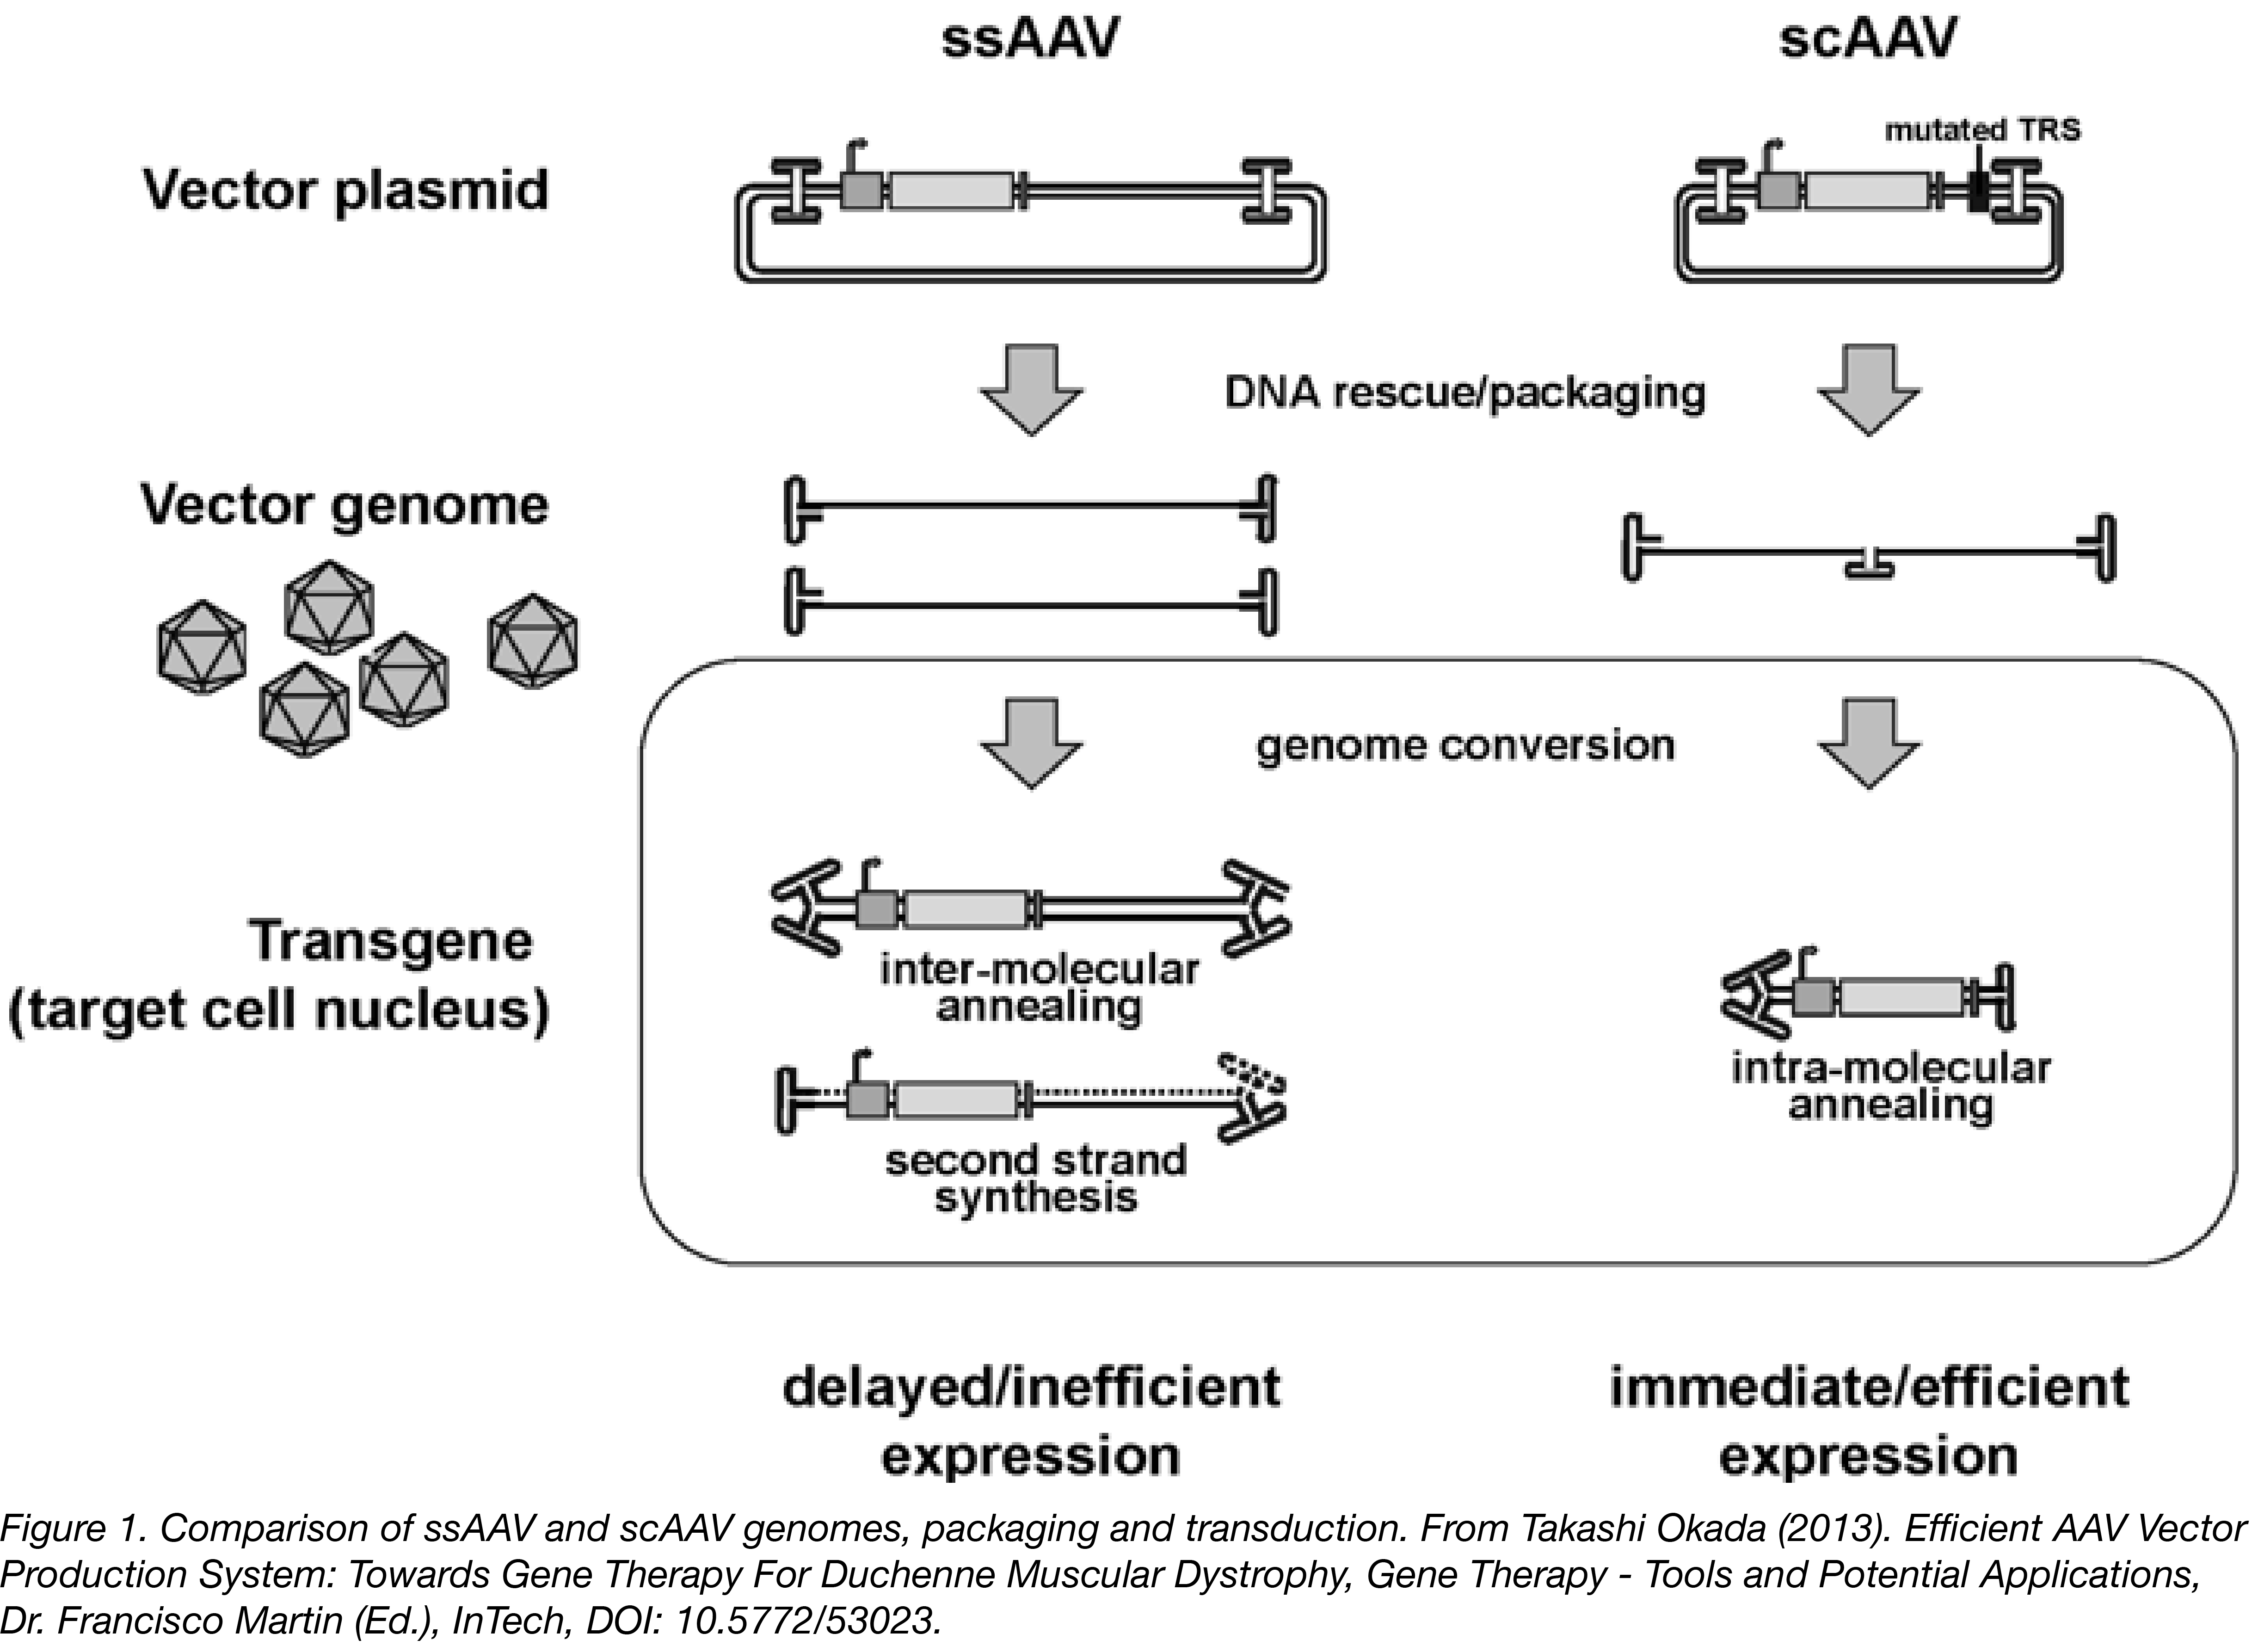 Comparison of ssAAV and scAAV genomes